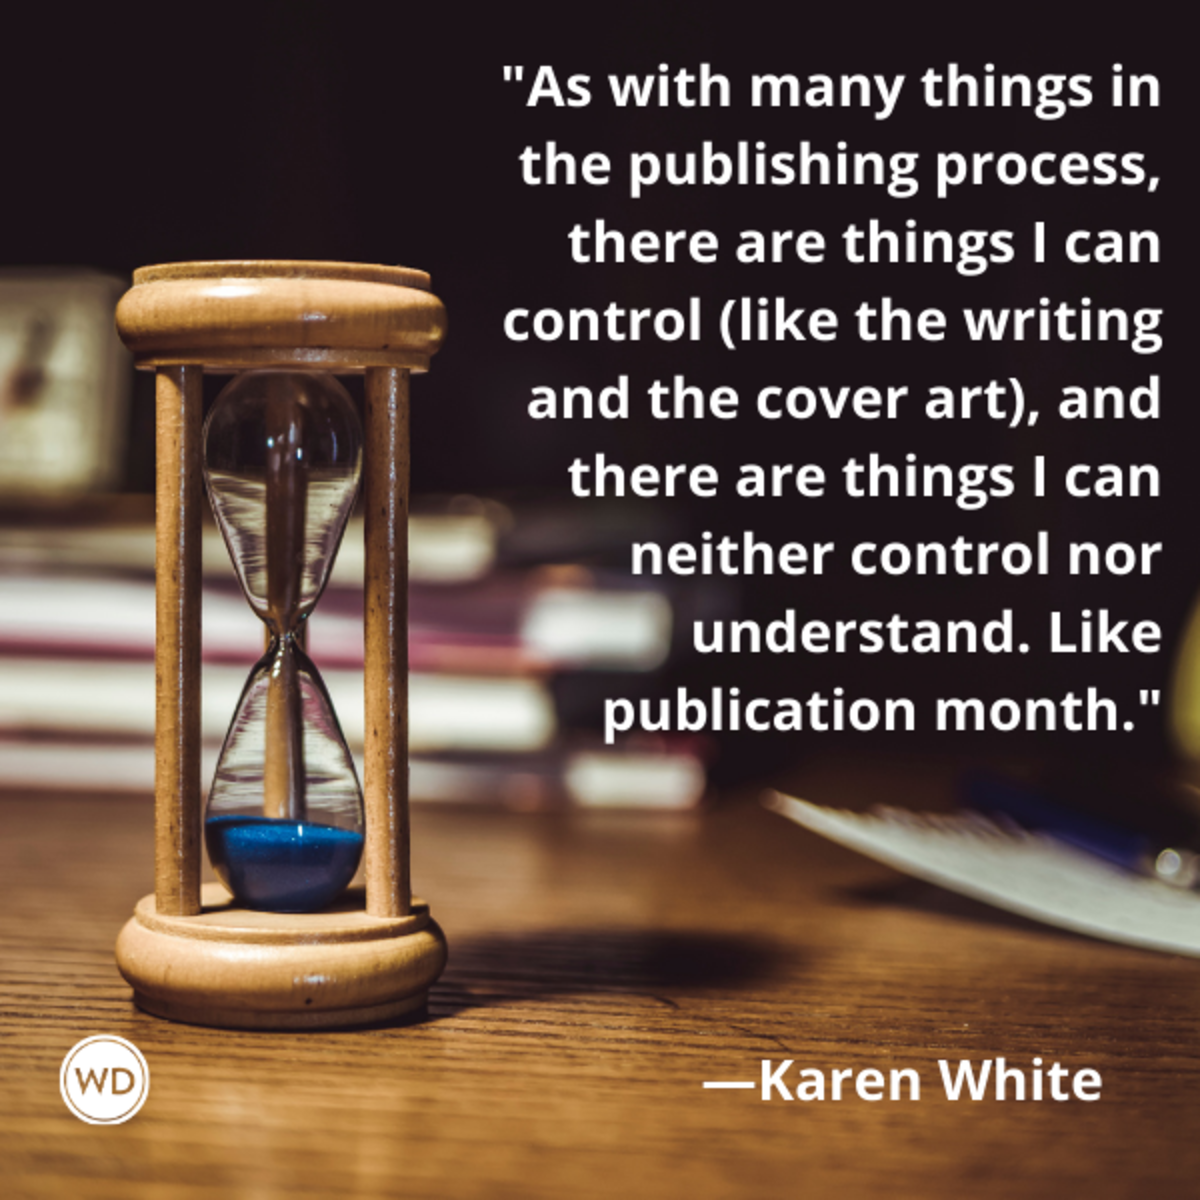 karen_white_quotes_there_are_things_i_can_control_and_things_i_can_neither_control_nor_understand